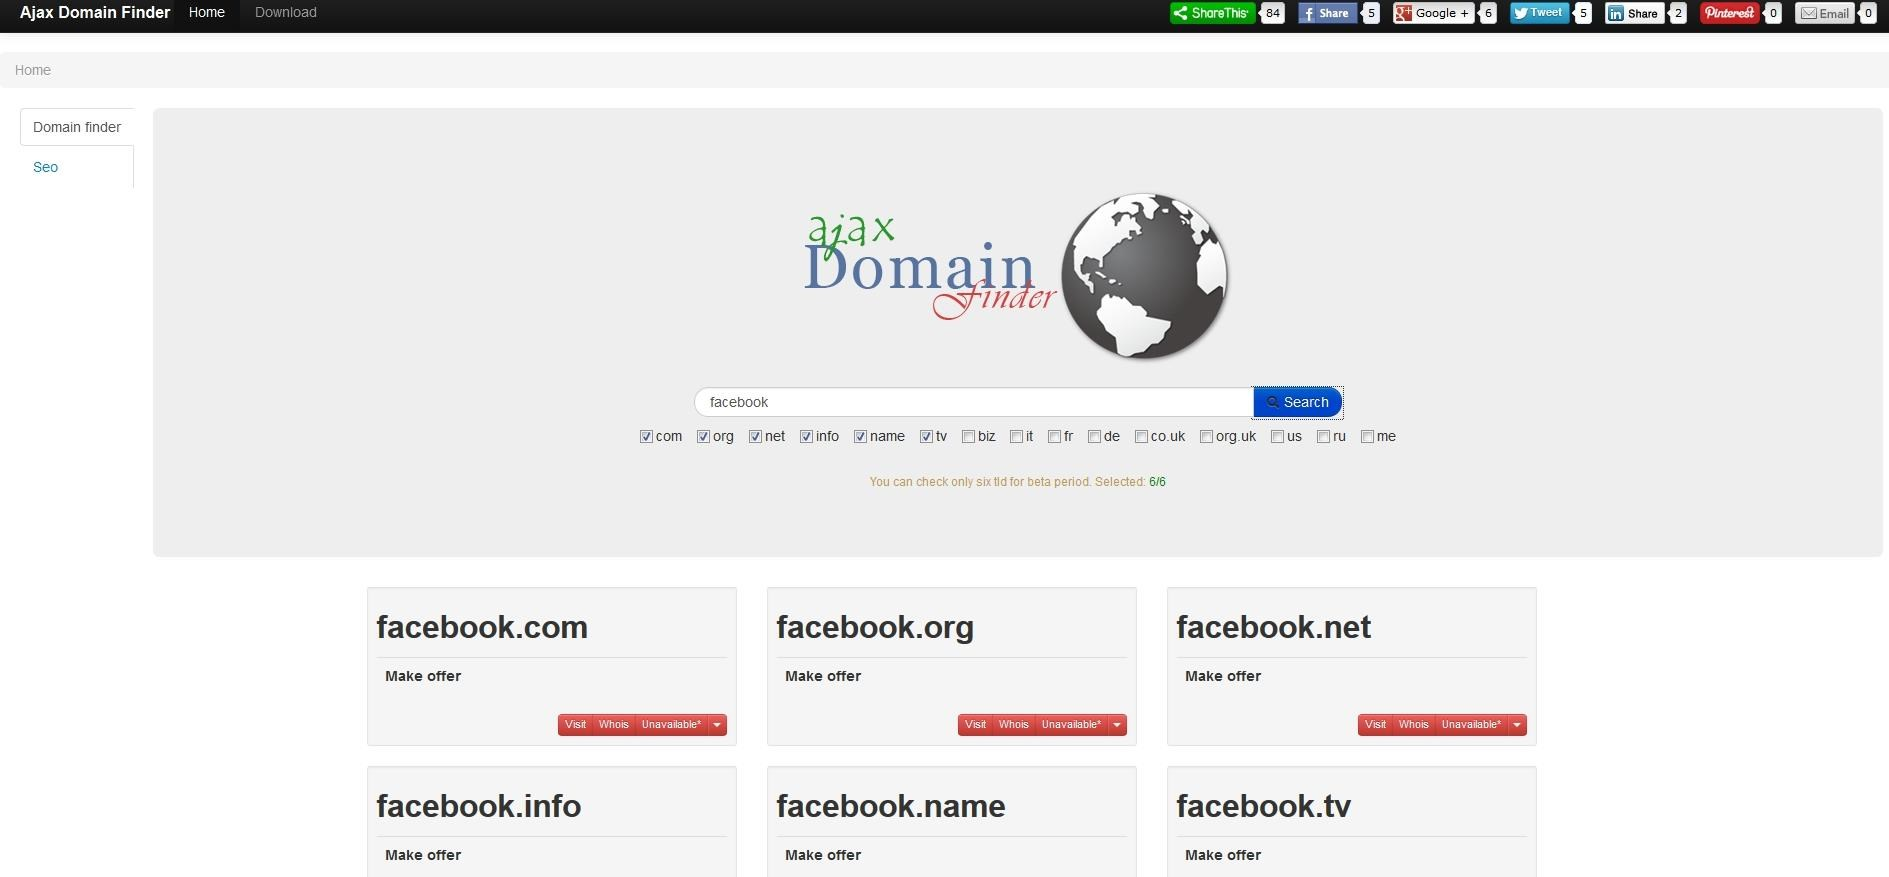 Ajax Domain Finder screenshot 0